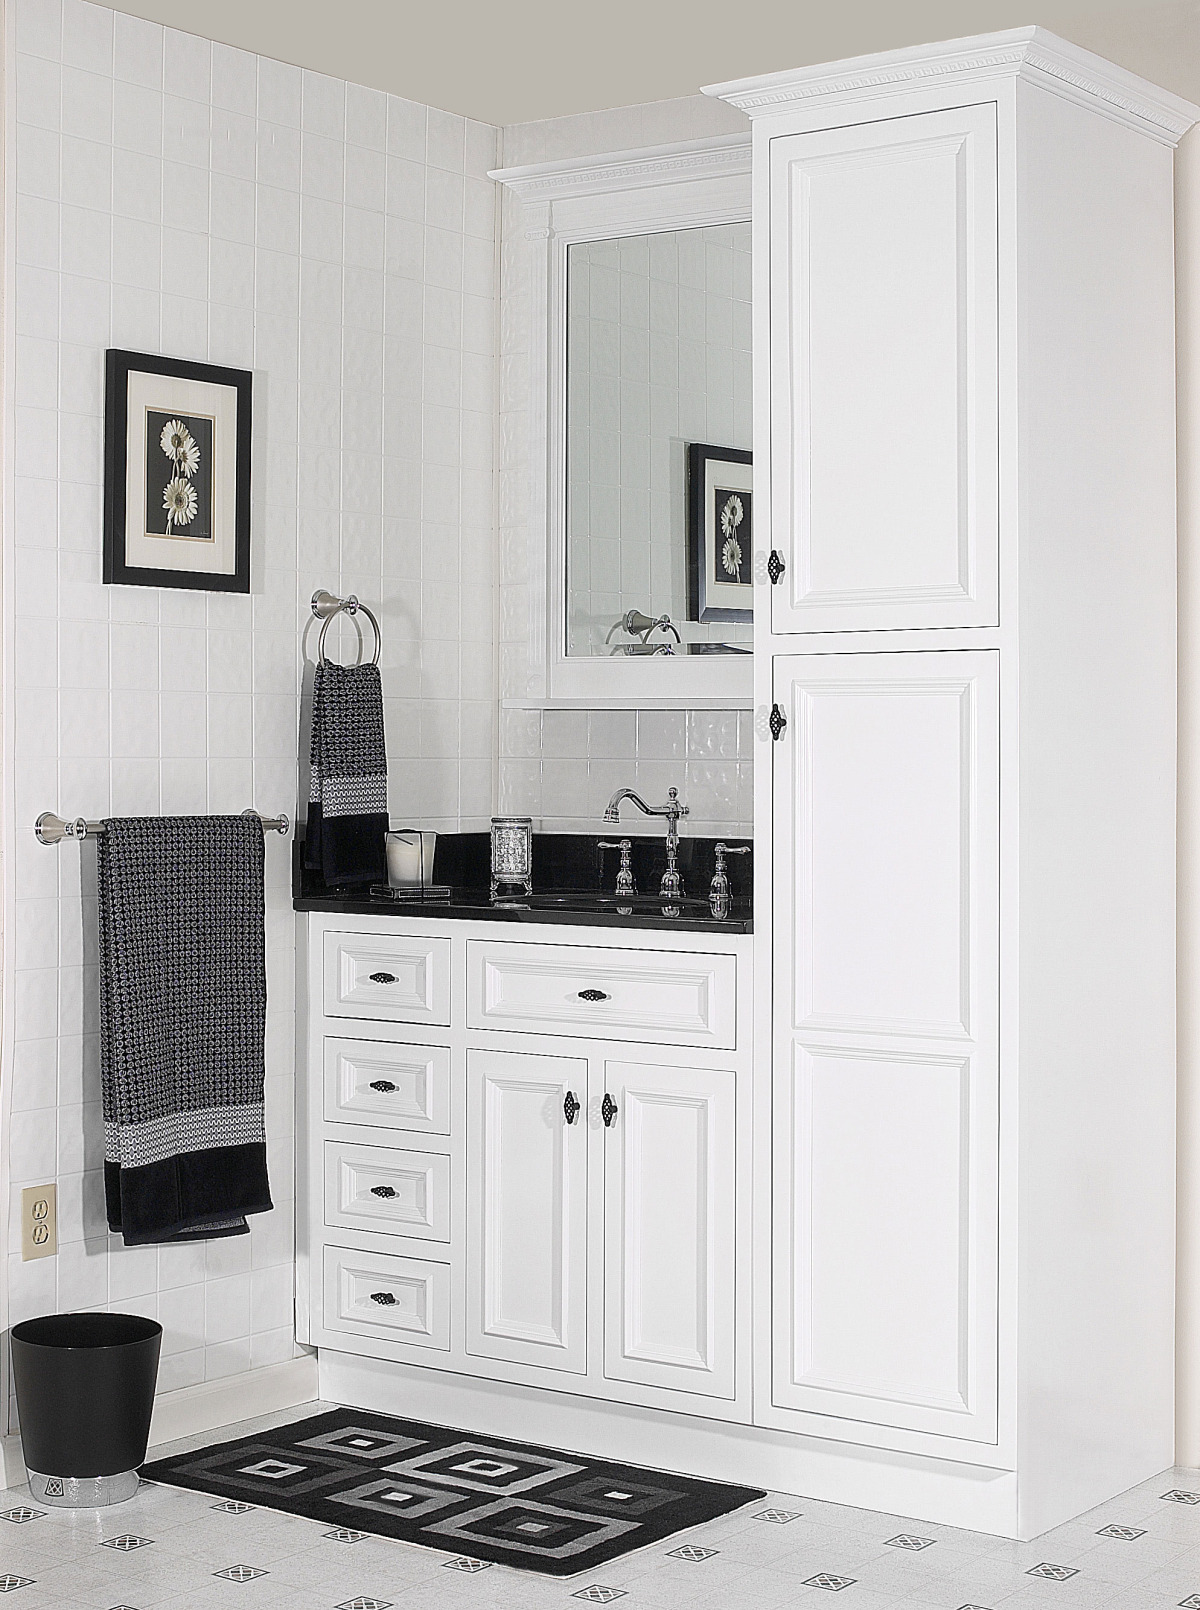 Bathroom vanity premium kitchen cabinets for Kitchen and bathroom cabinets